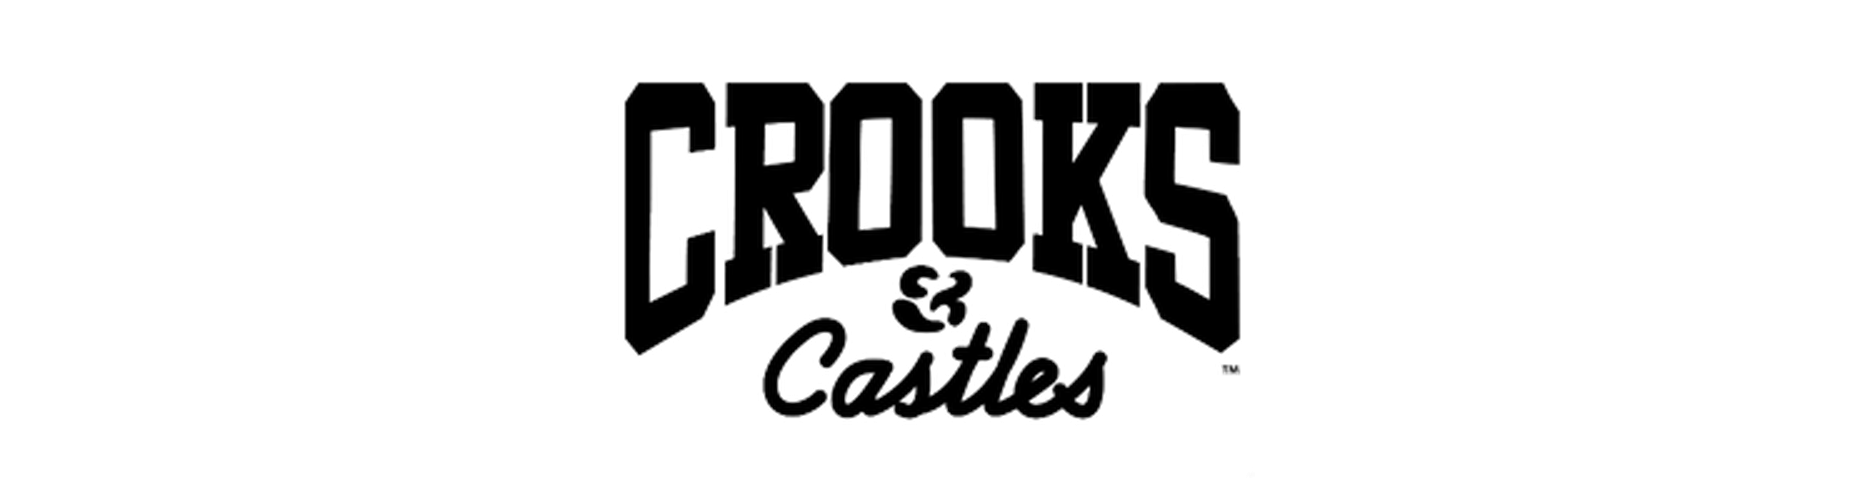 Crooks & Castles UK